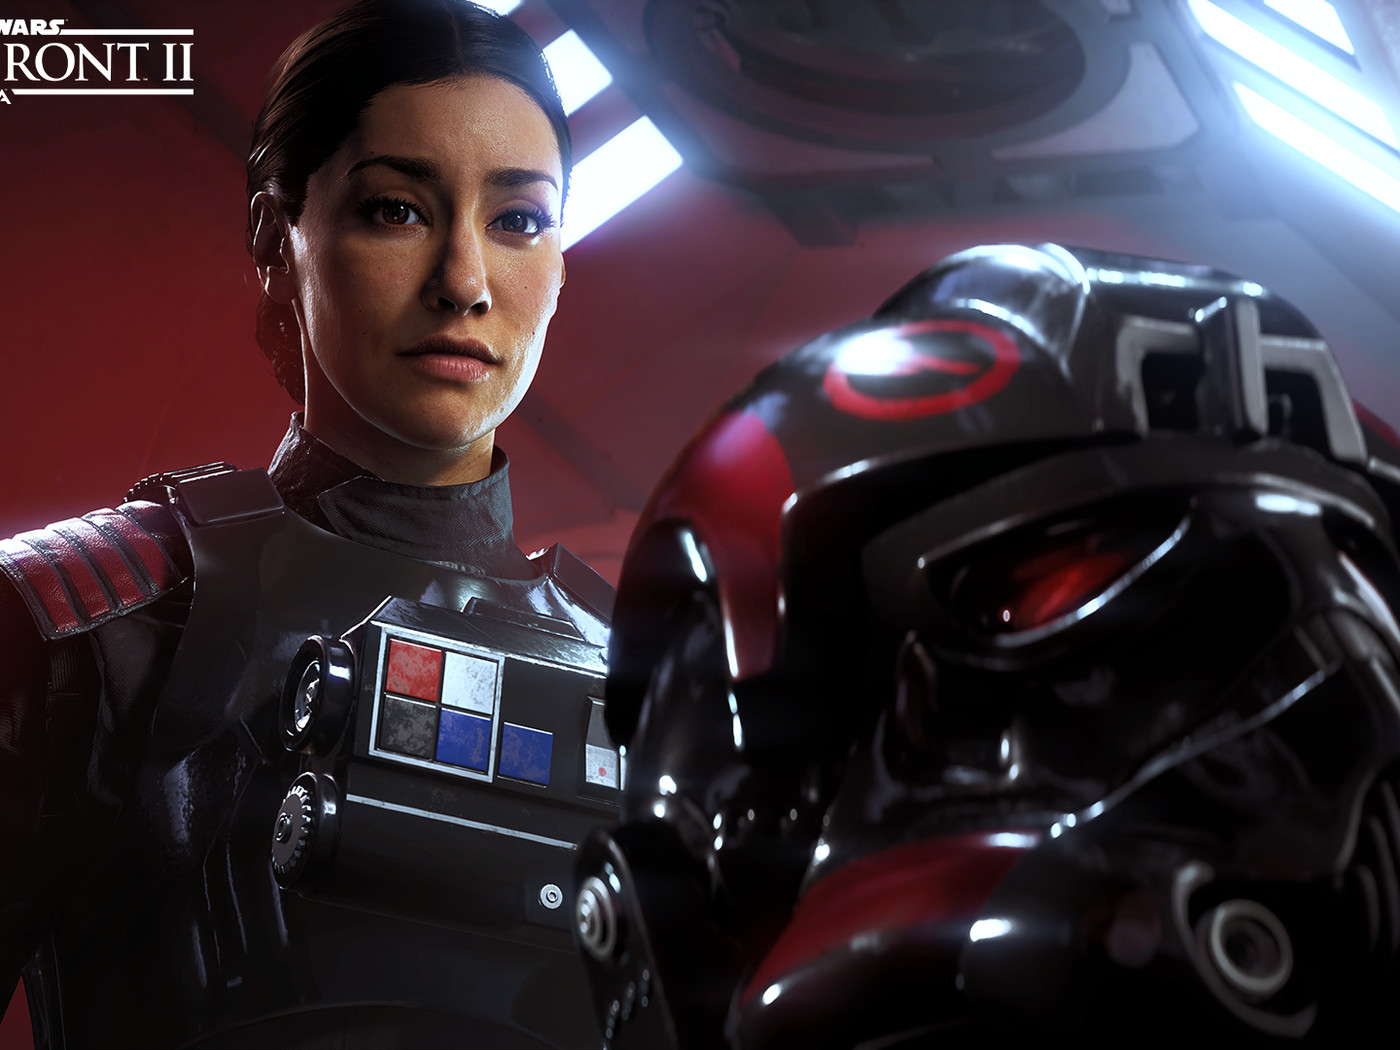 Star Wars Battlefront Ii S Single Player Campaign Is A Great New Story With A Nostalgia Problem The Verge